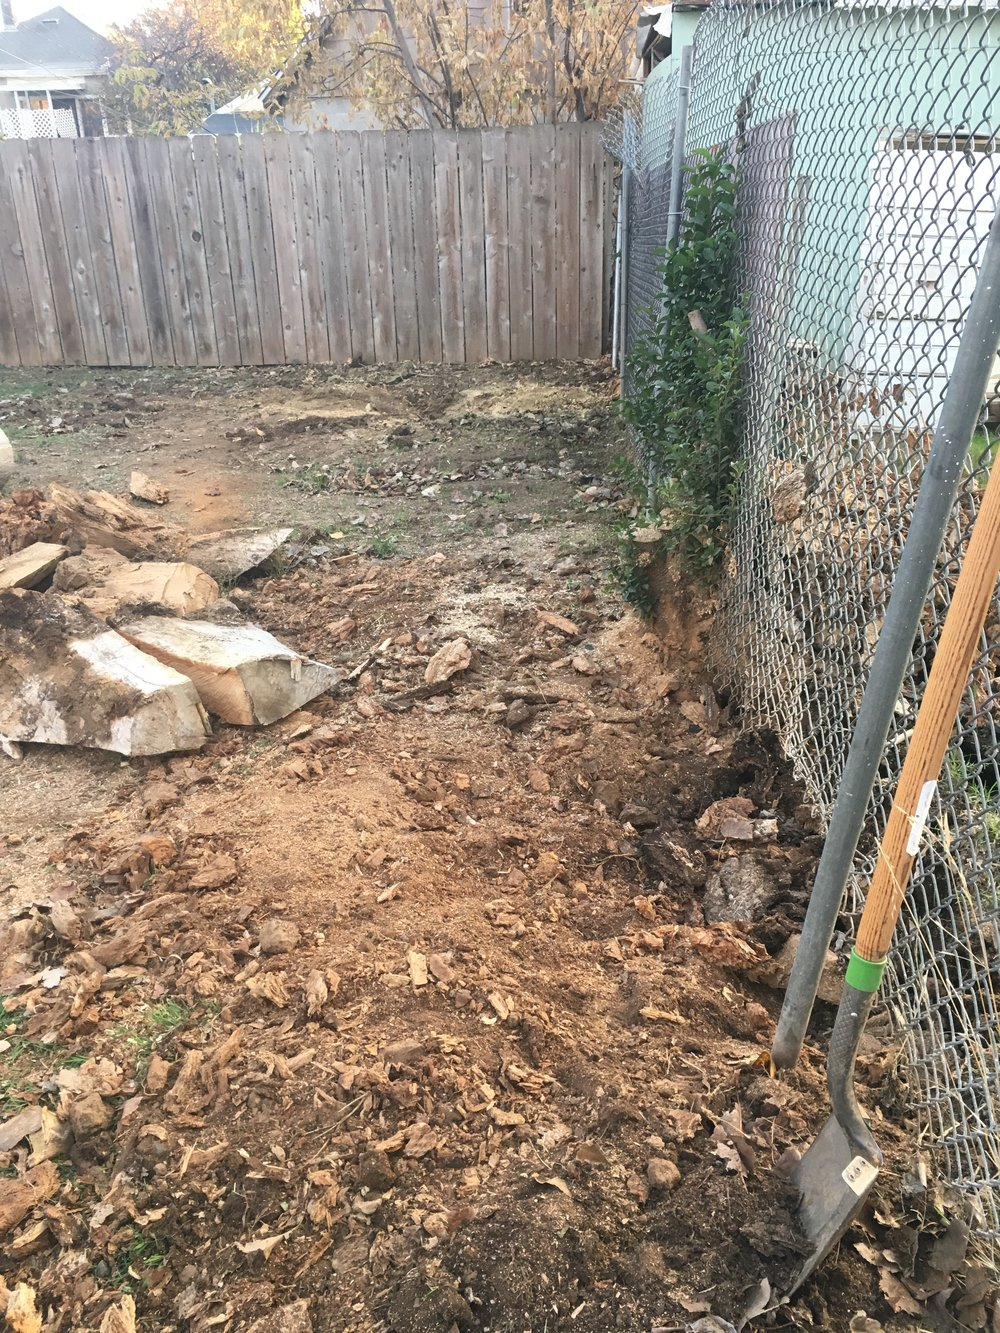 - Remember that giant stump all snuggled up against the chain link fence? This is what I managed to do with a chainsaw and a shovel. Boom, baby!